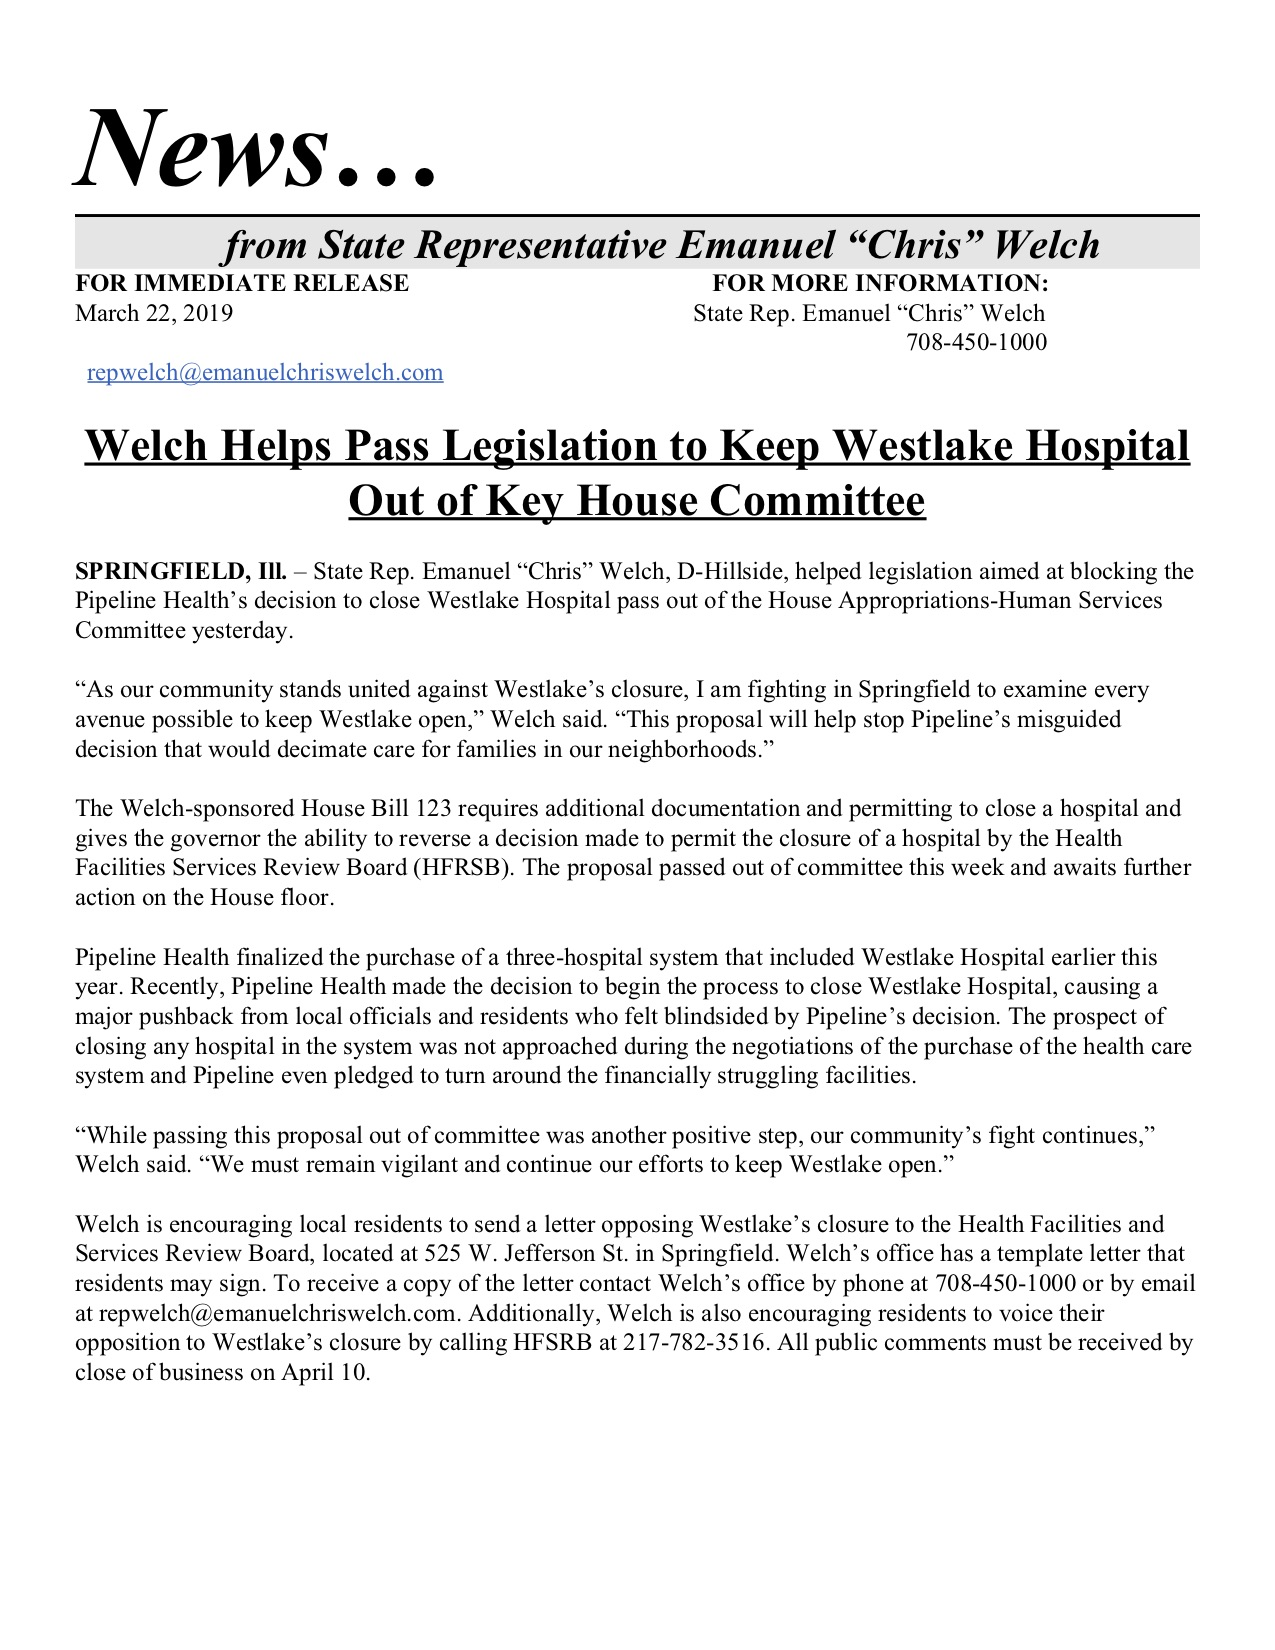 Welch Helps Pass Legislation to Keep Westlake Hospital Out of Key House Committee  (March 22, 2019)